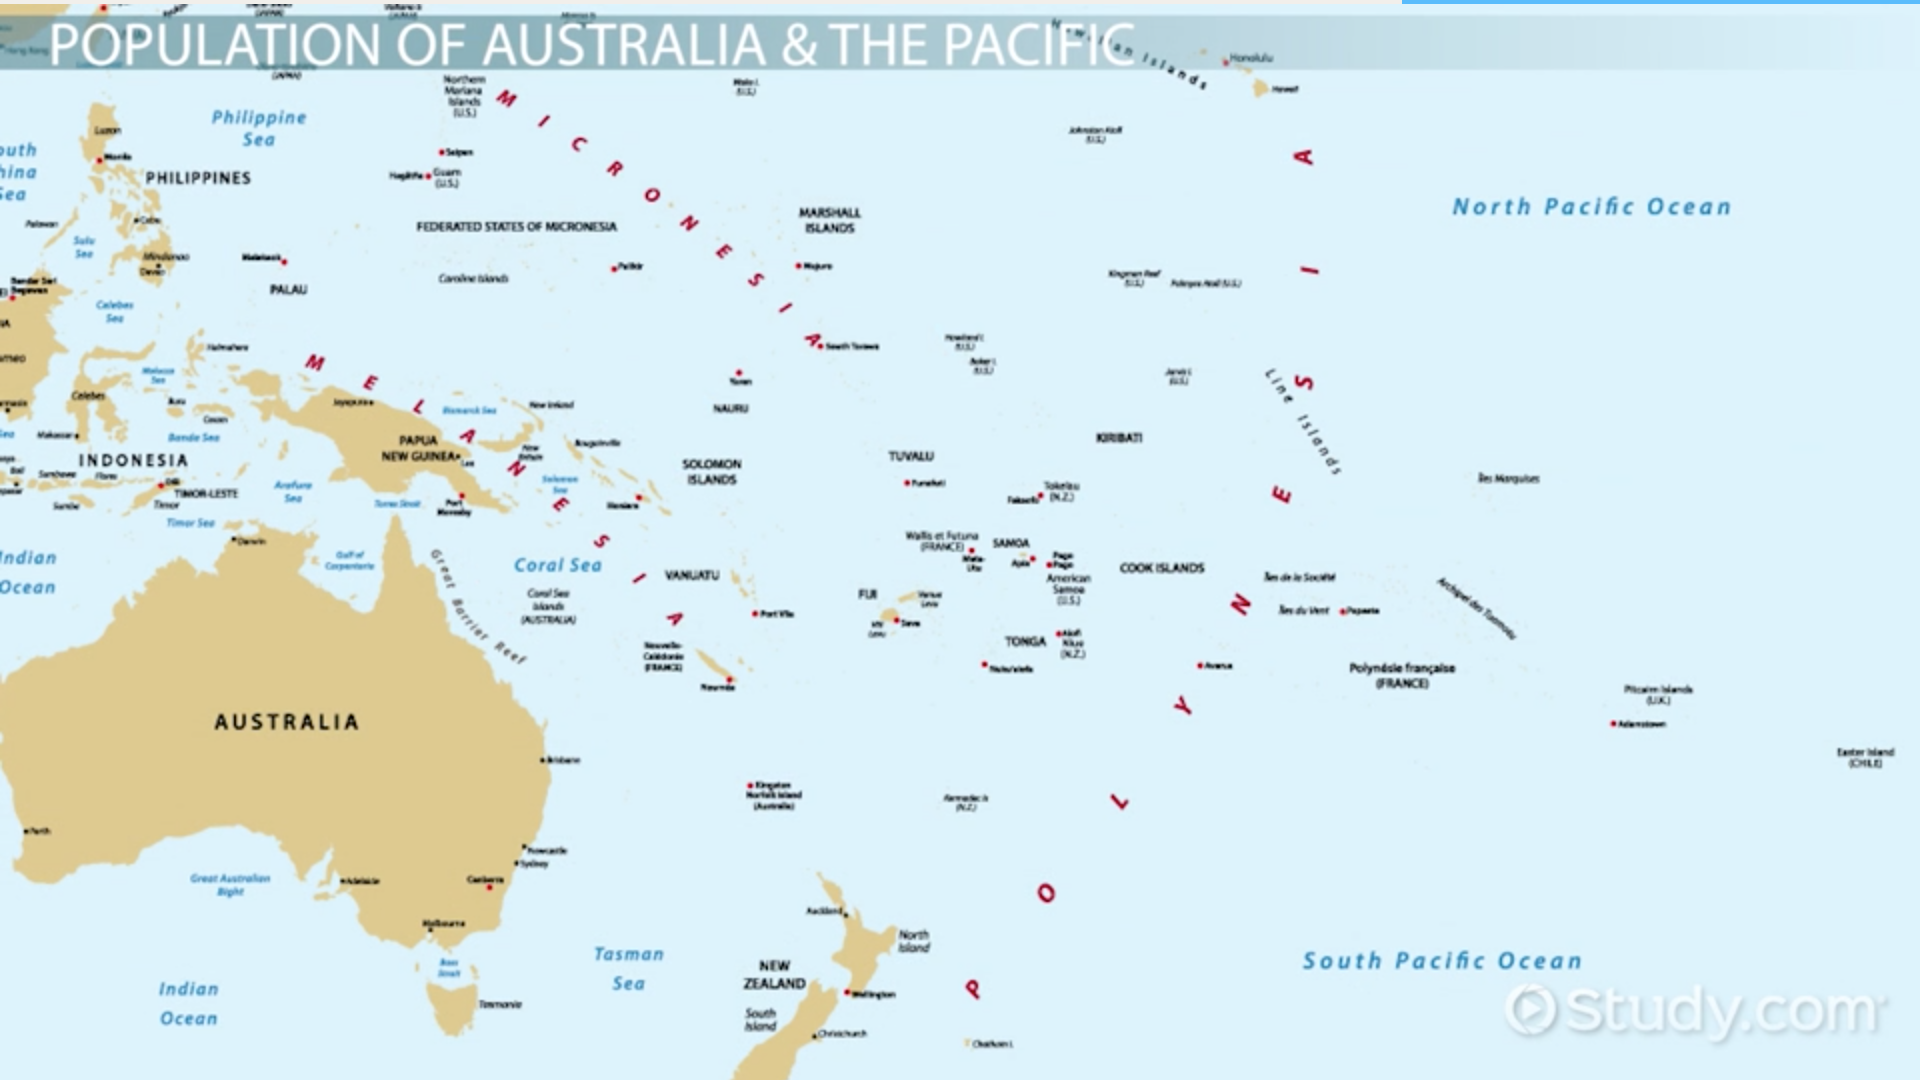 Australia And Pacific Map.Demographics Of Australia The Pacific Islands Video Lesson